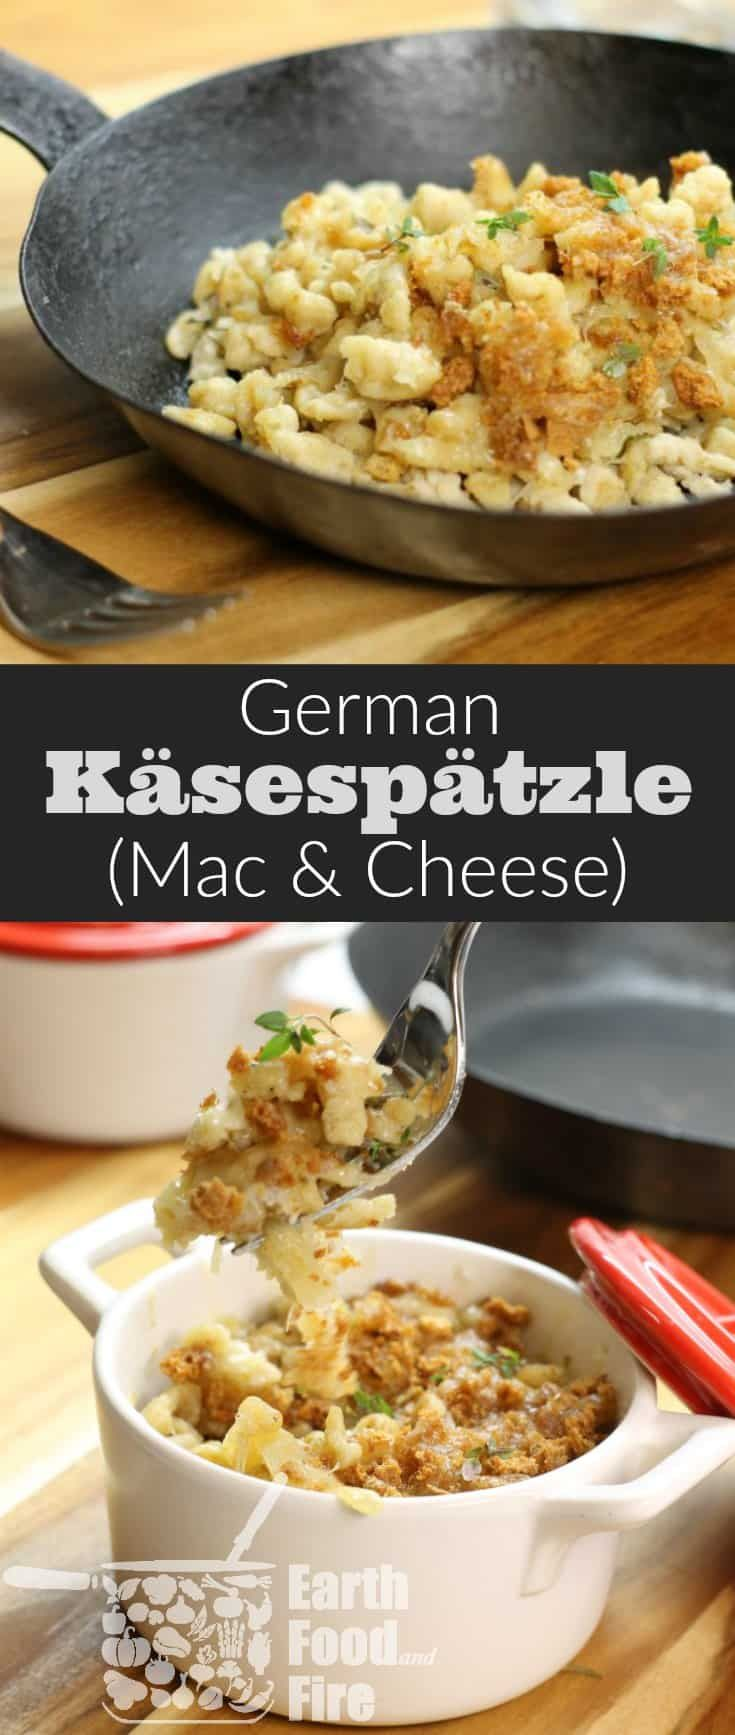 German käsespätzle also known as cheese spaetzle, is an easy to make noodle dish loaded with Emmental Cheese. Basically a fancy Mac & Cheese this traditional German dish is ideal for lunch or a quick supper! #spaetzle #cheese #macandcheese